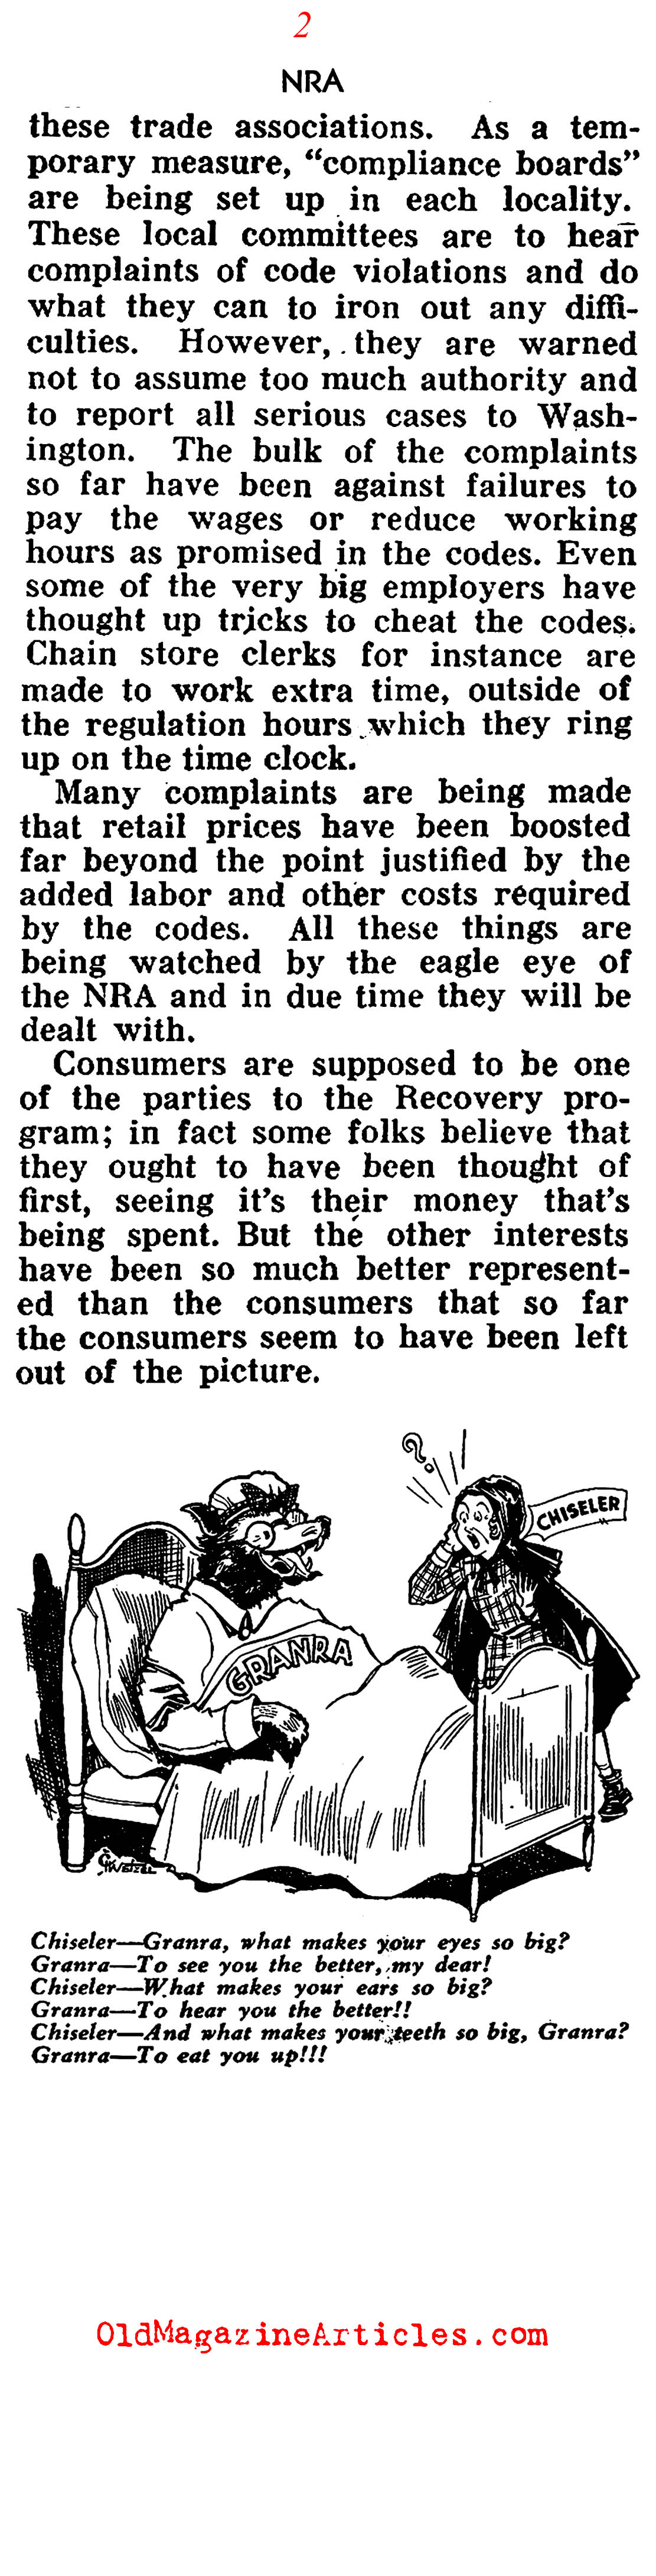 The NRA Shows Its Teeth (Pathfinder Magazine, 1933)